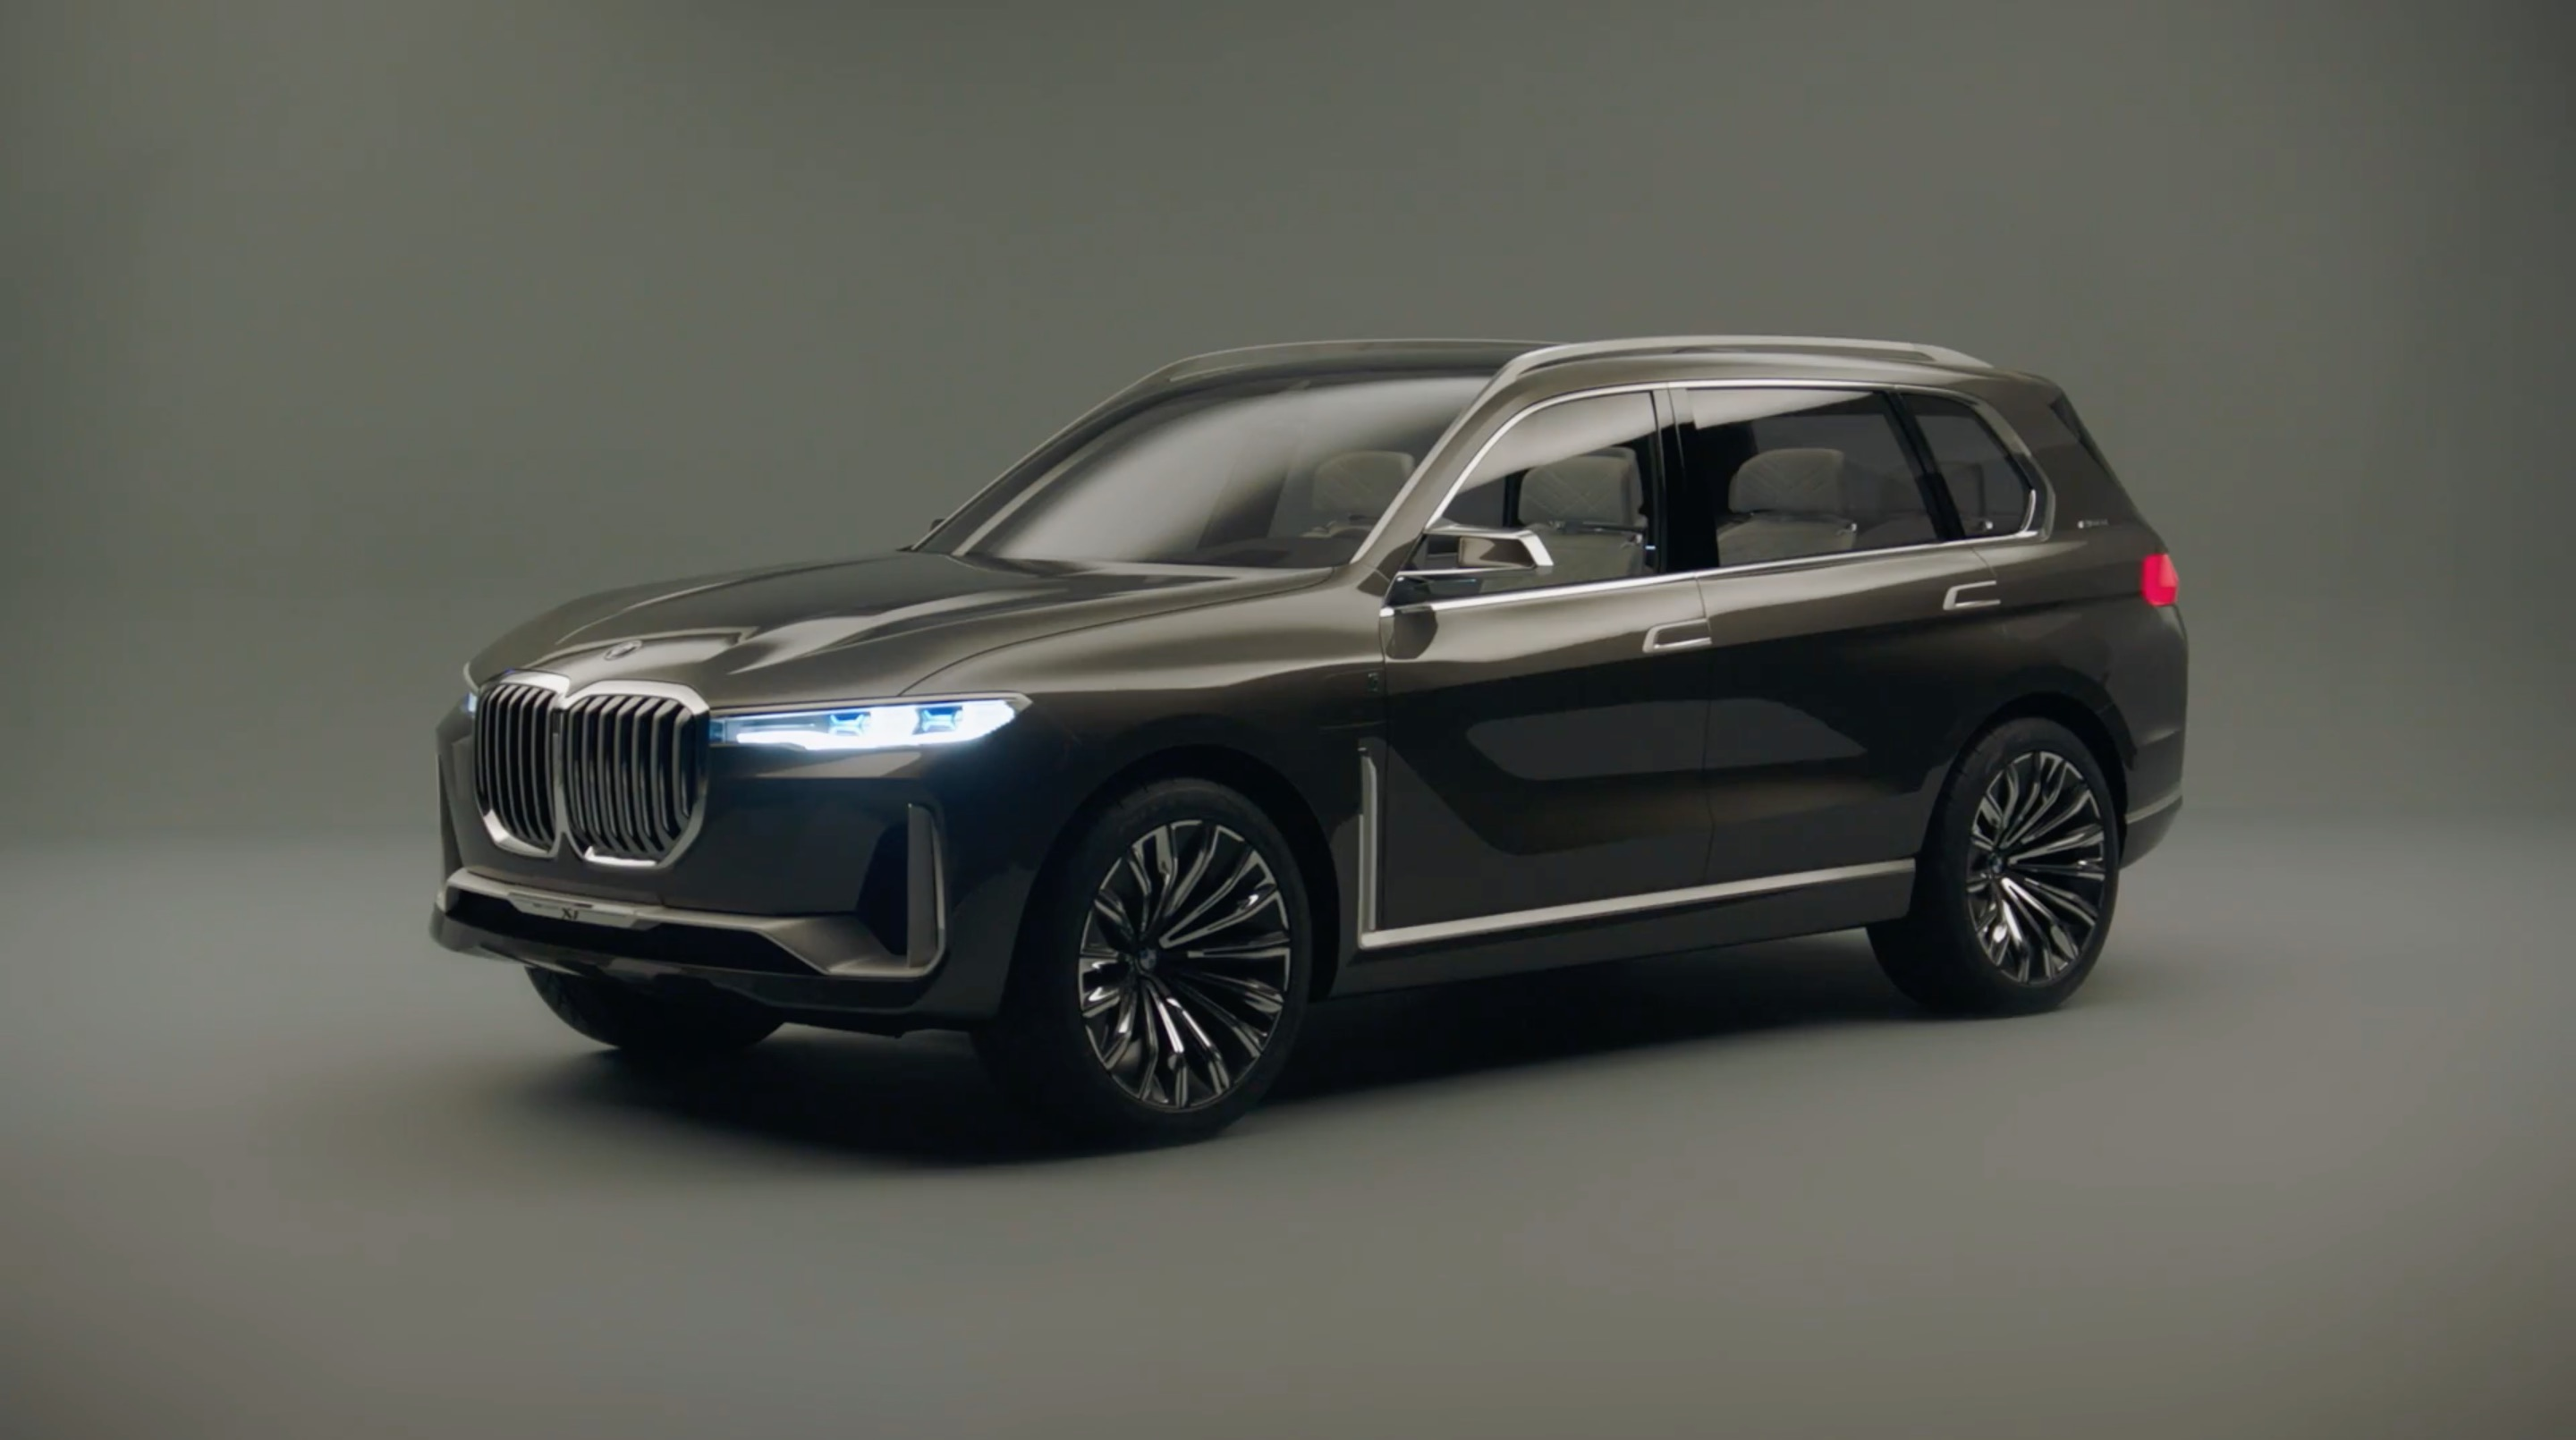 Bmw X7 Iperformance Concept Official Reveal Page 13